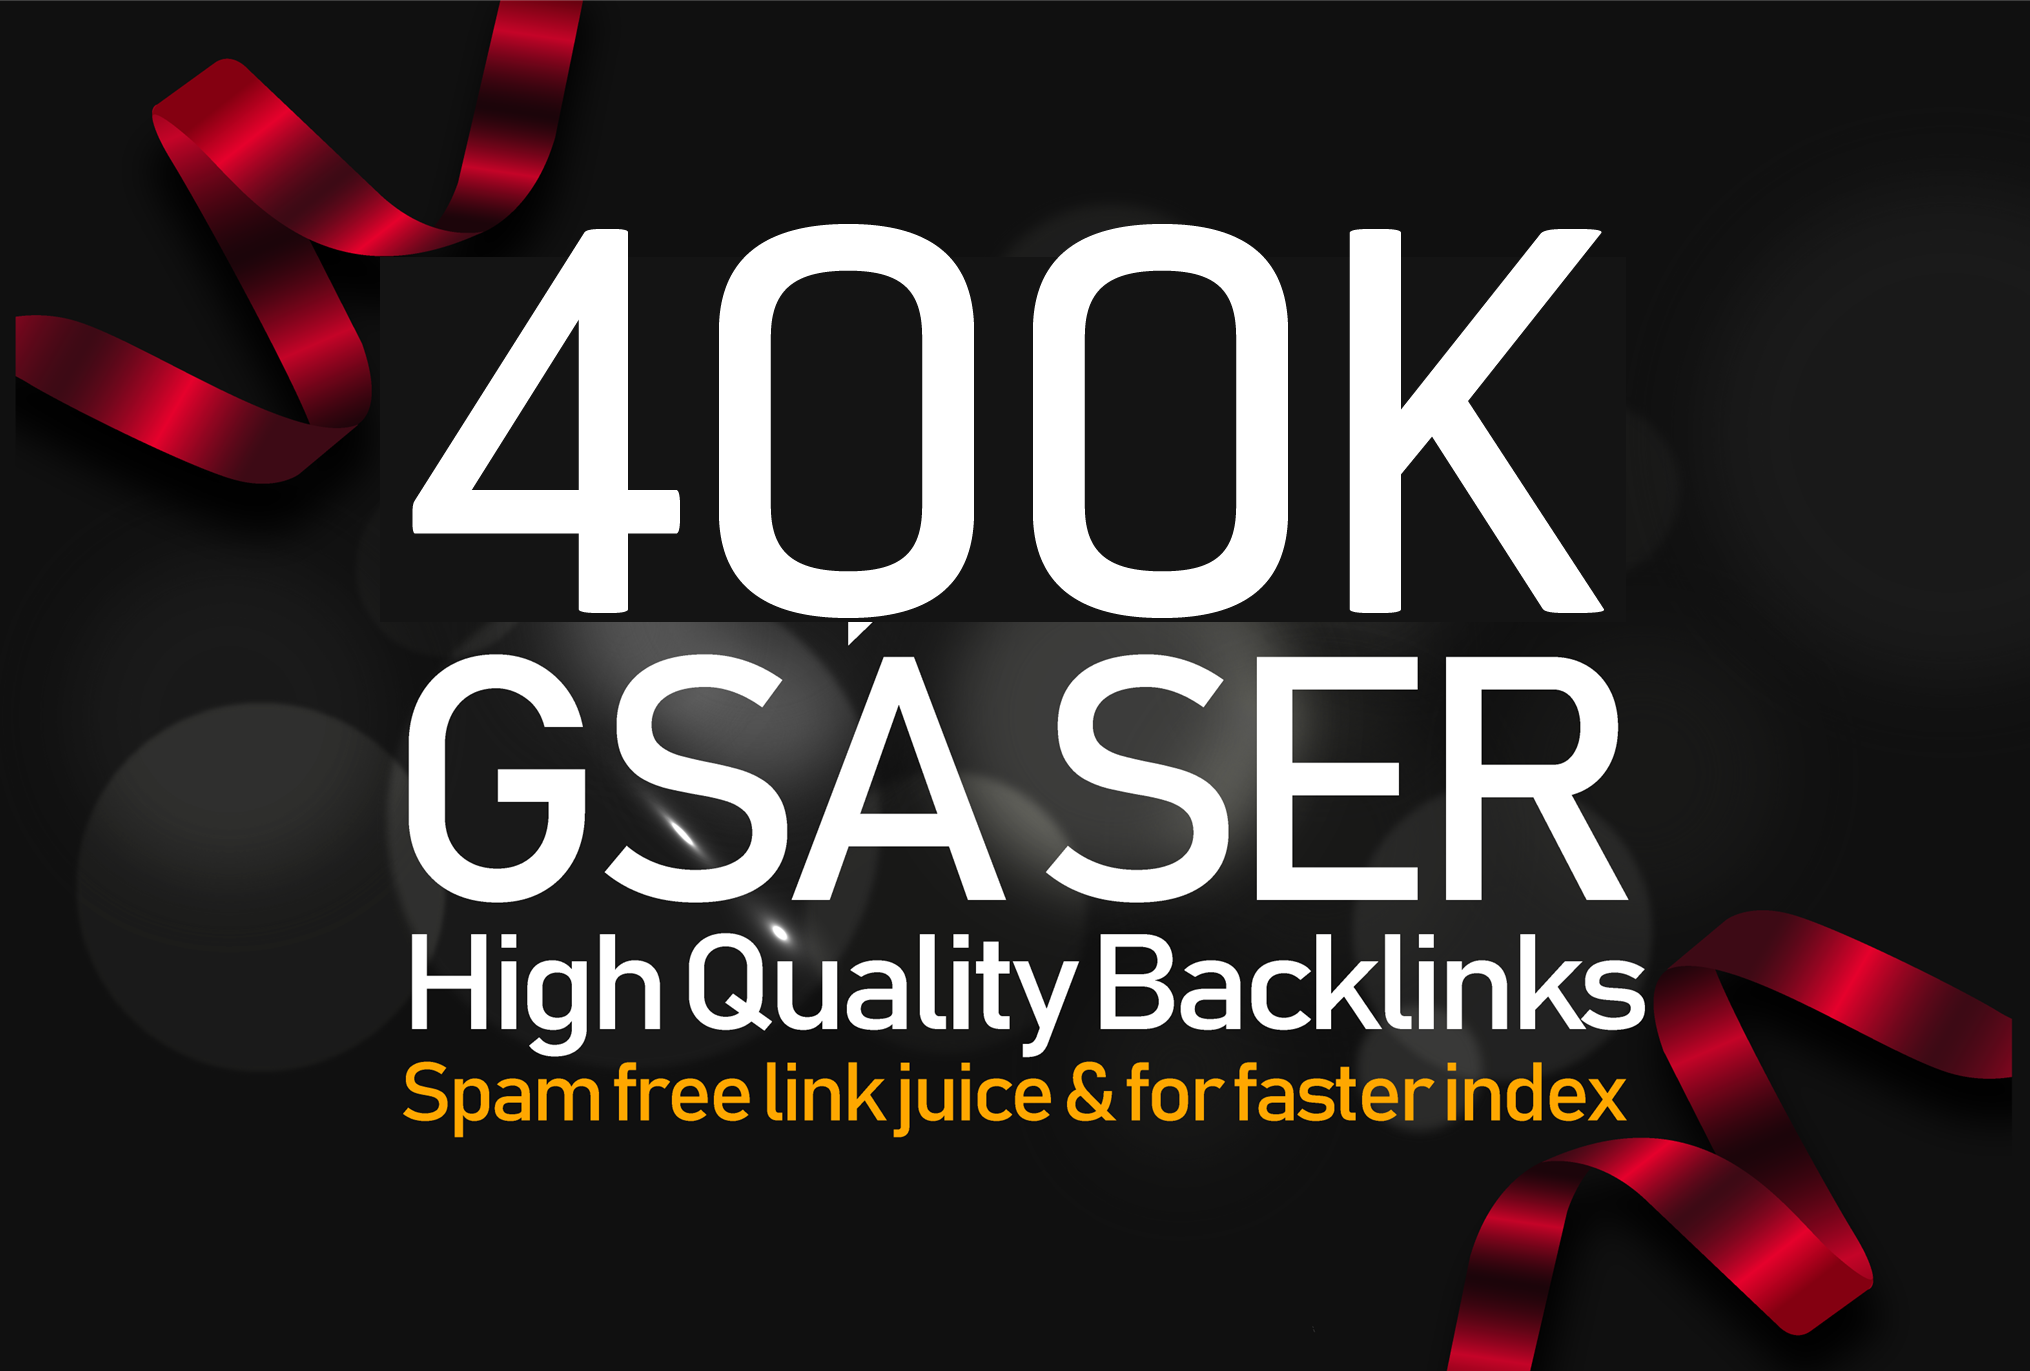 400,000 GSA SER Backlinks For Increase Link Juice and...